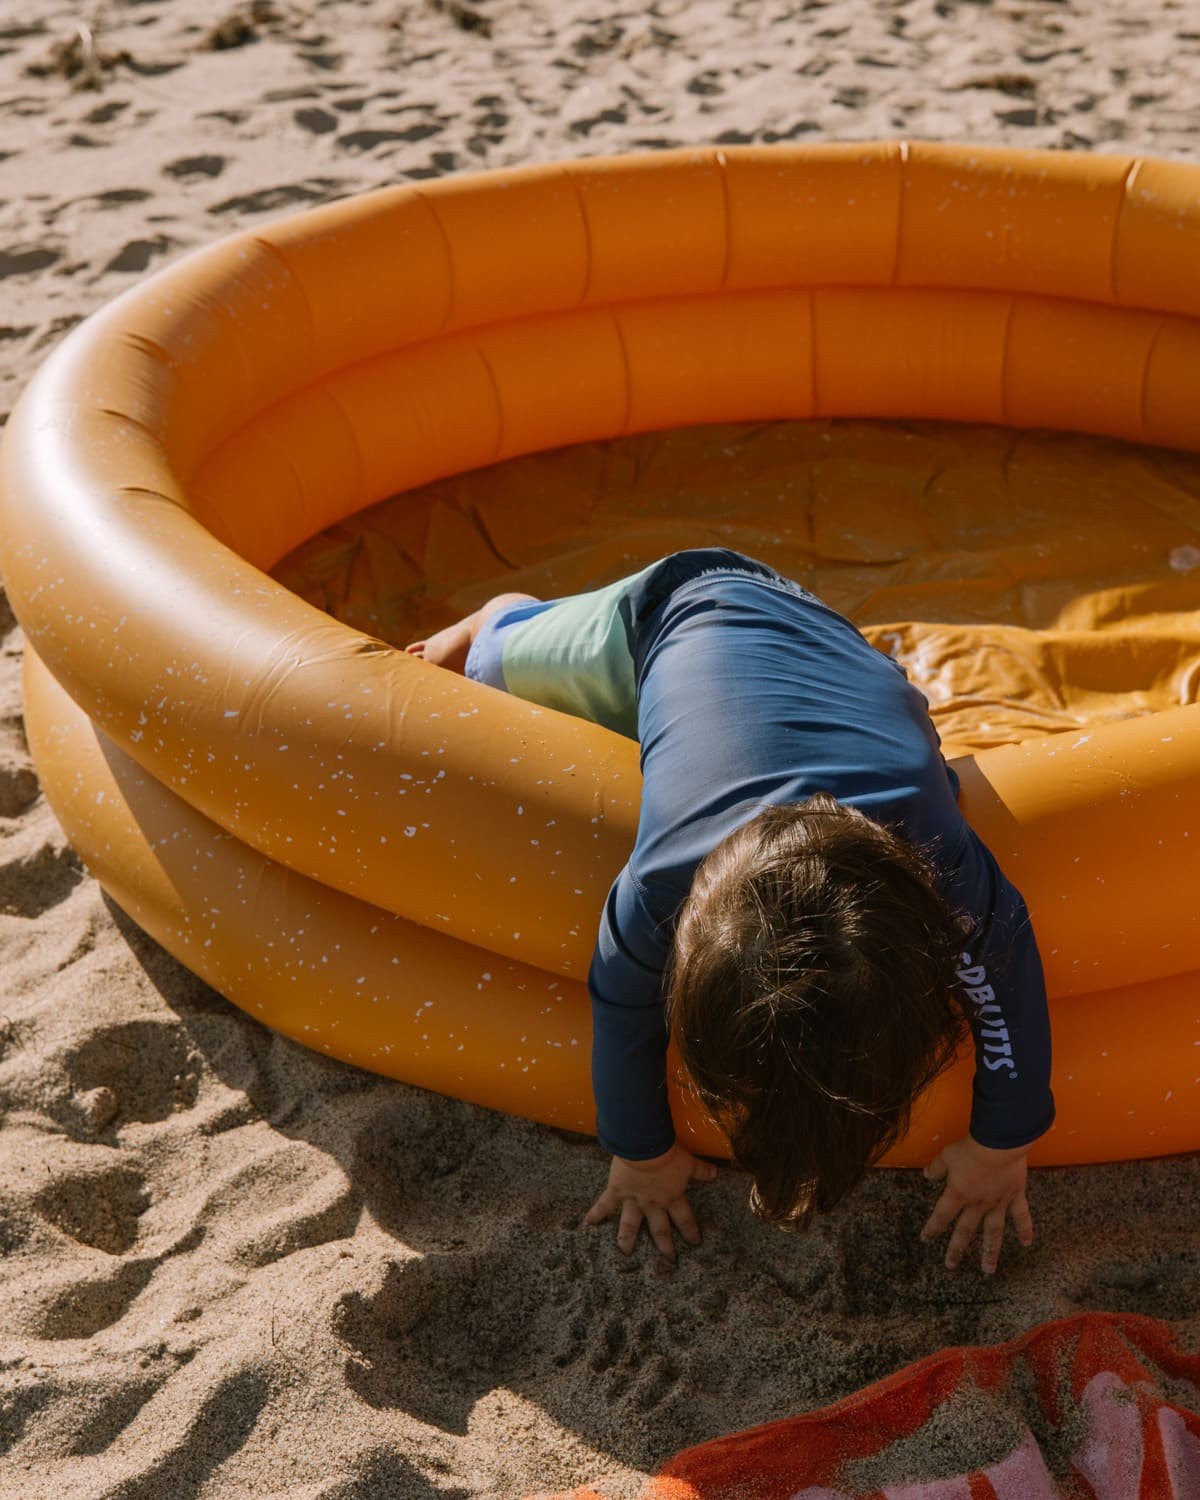 inflatable pool for kids